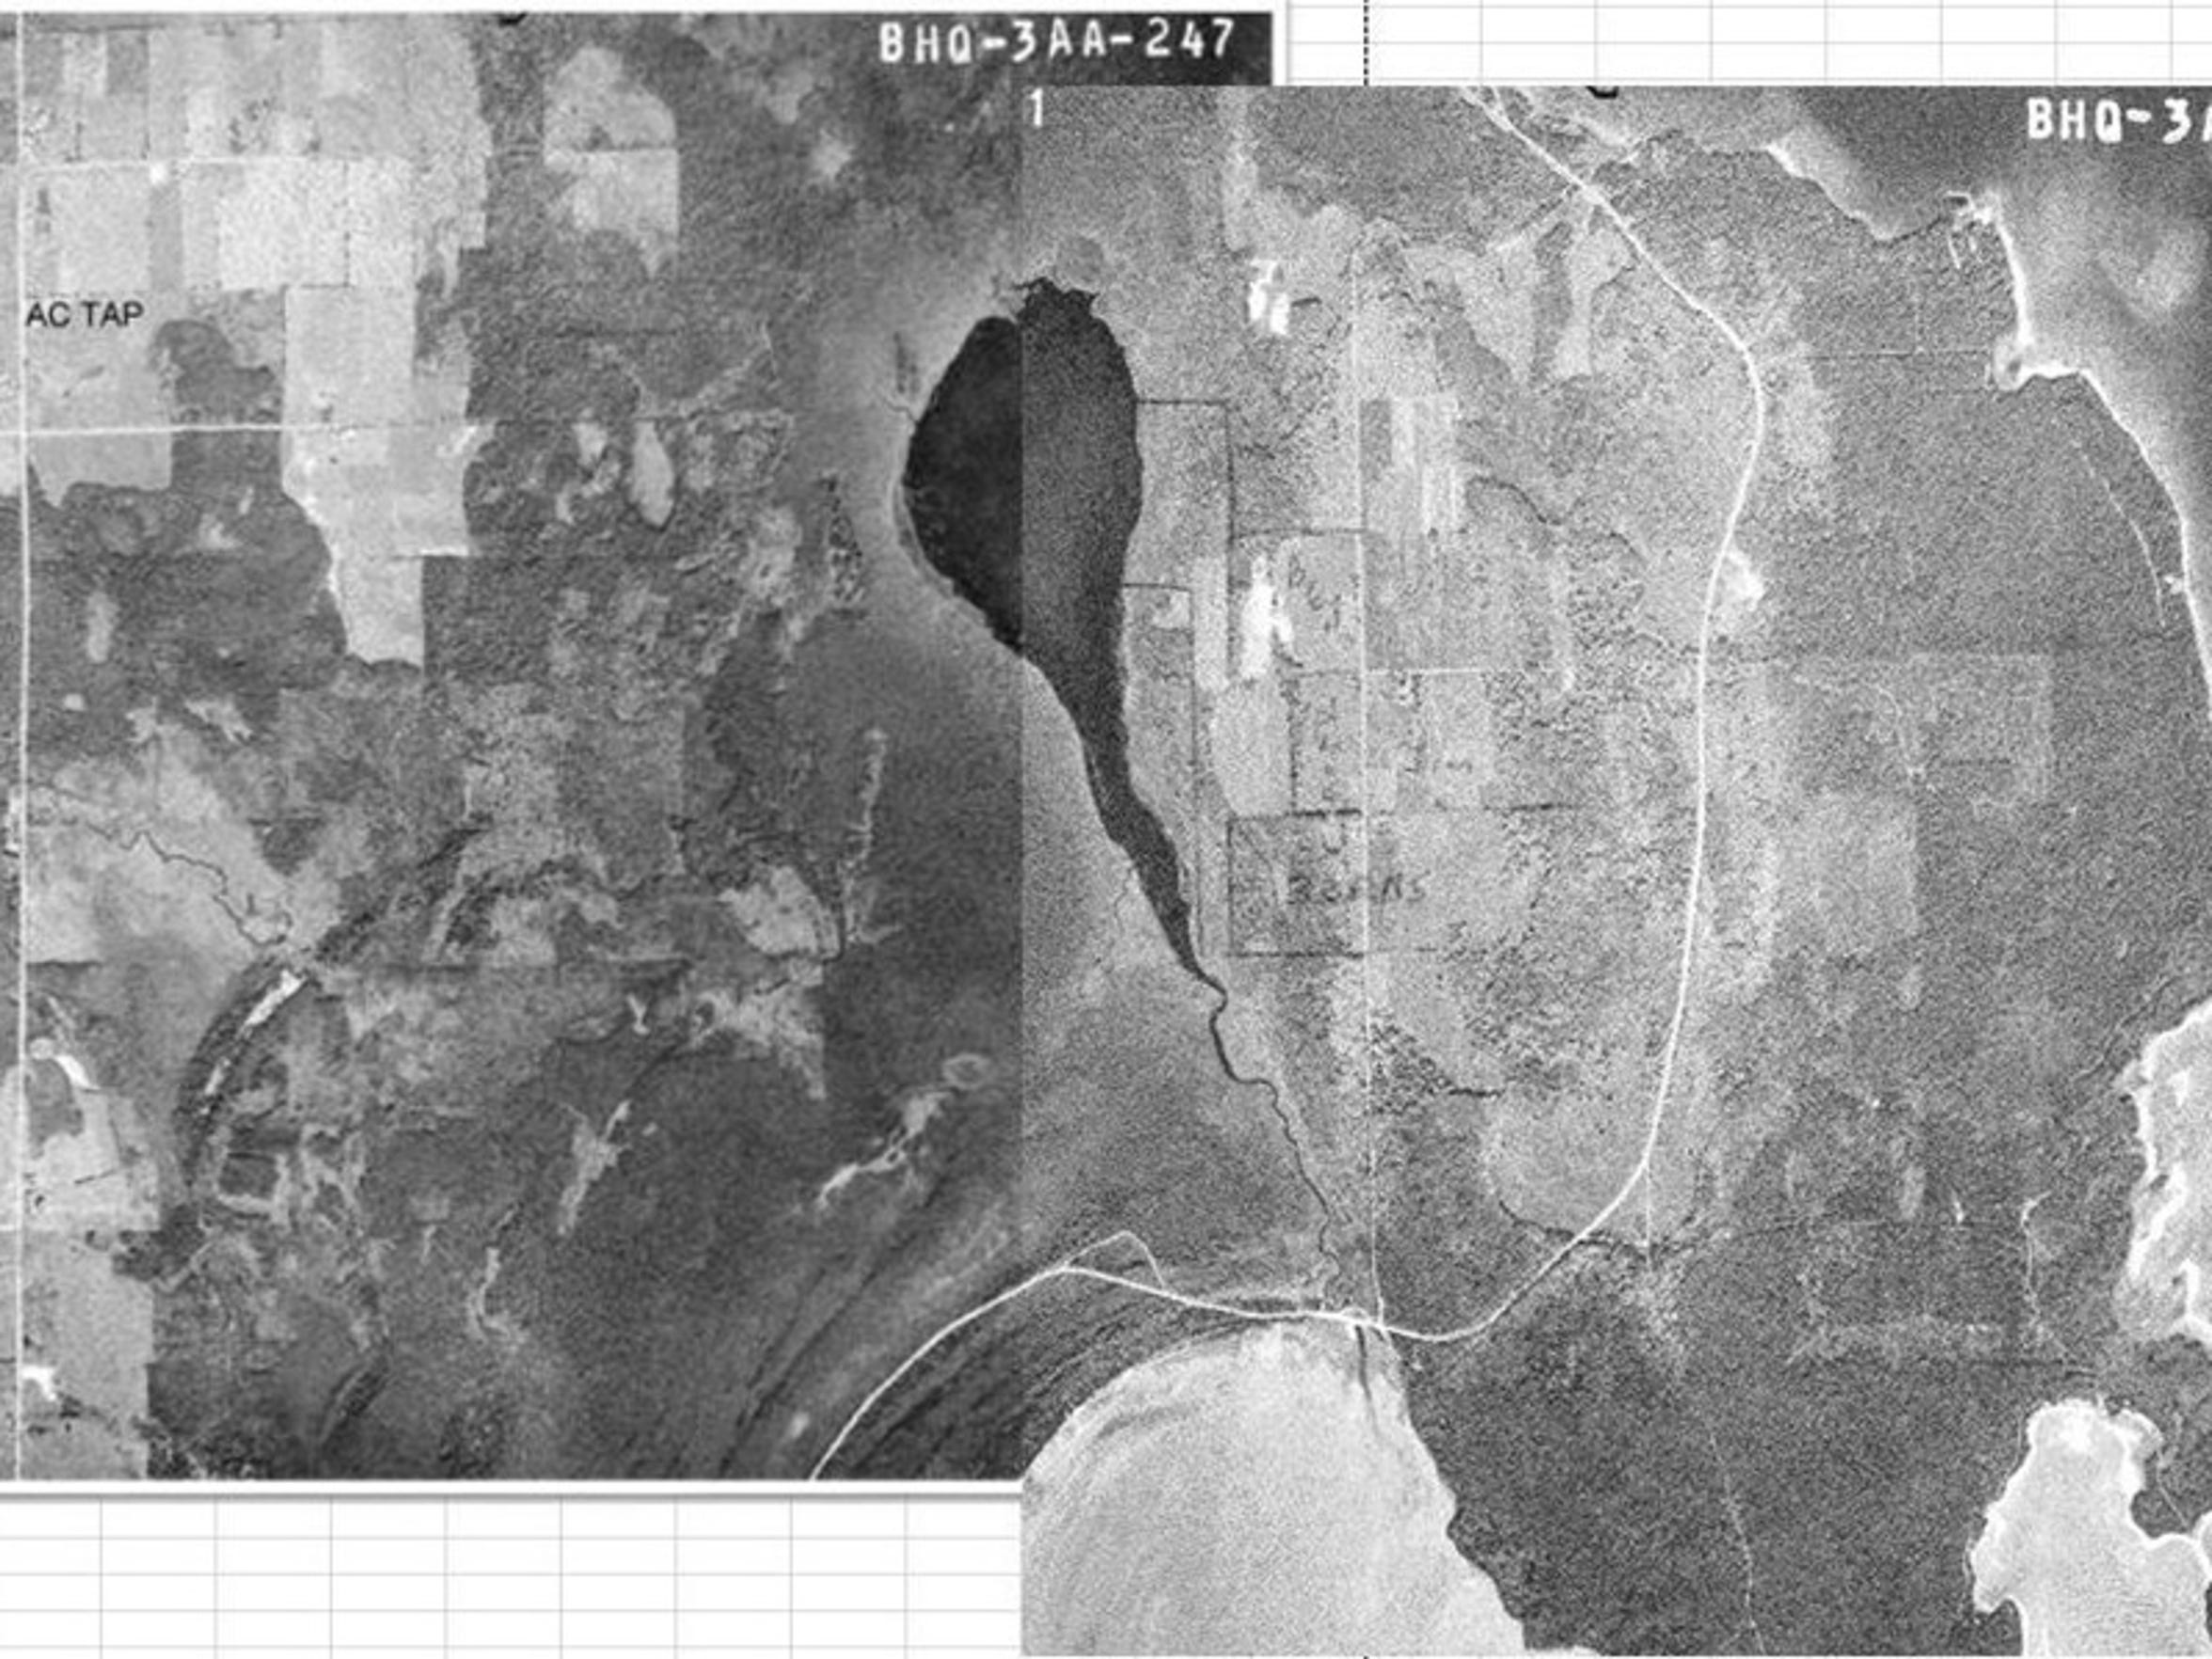 Two aerial shots provided by the Door County Soil and Water Conservation office shows the Mud Lake State Wildlife Area as it appeared in the 1960s. Door County Sheriff's Chief Deputy Pat McCarty matched the images up and labeled various landmarks.